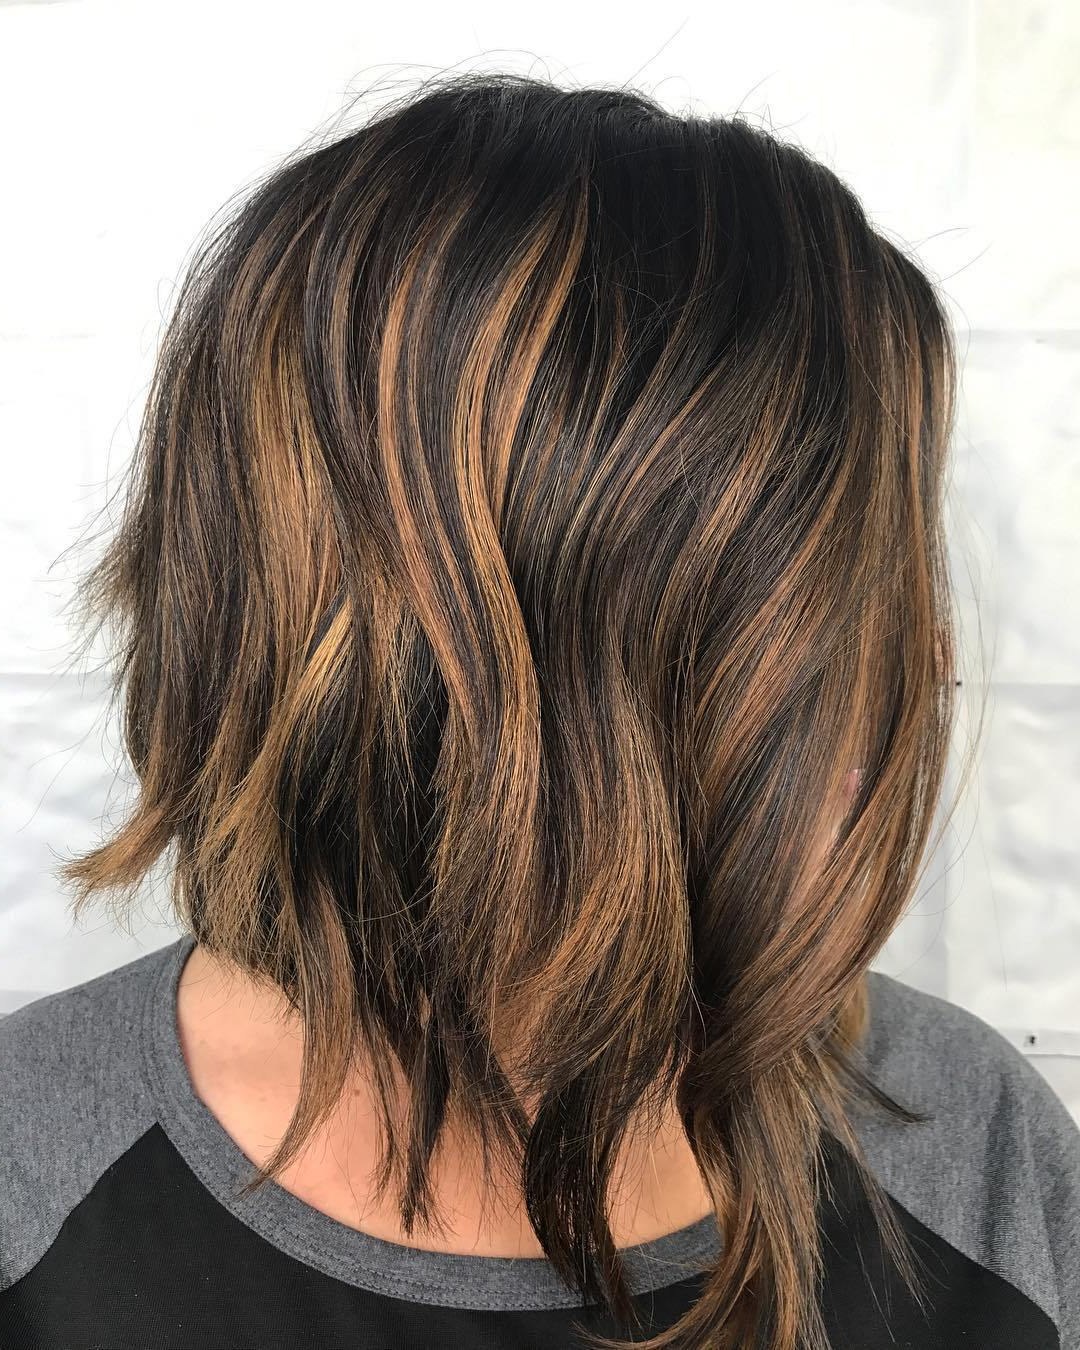 50 Hairstyles For Thick Wavy Hair You Will Adore – Hair Inside Favorite Razored Gray Bob Hairstyles With Bangs (View 4 of 20)